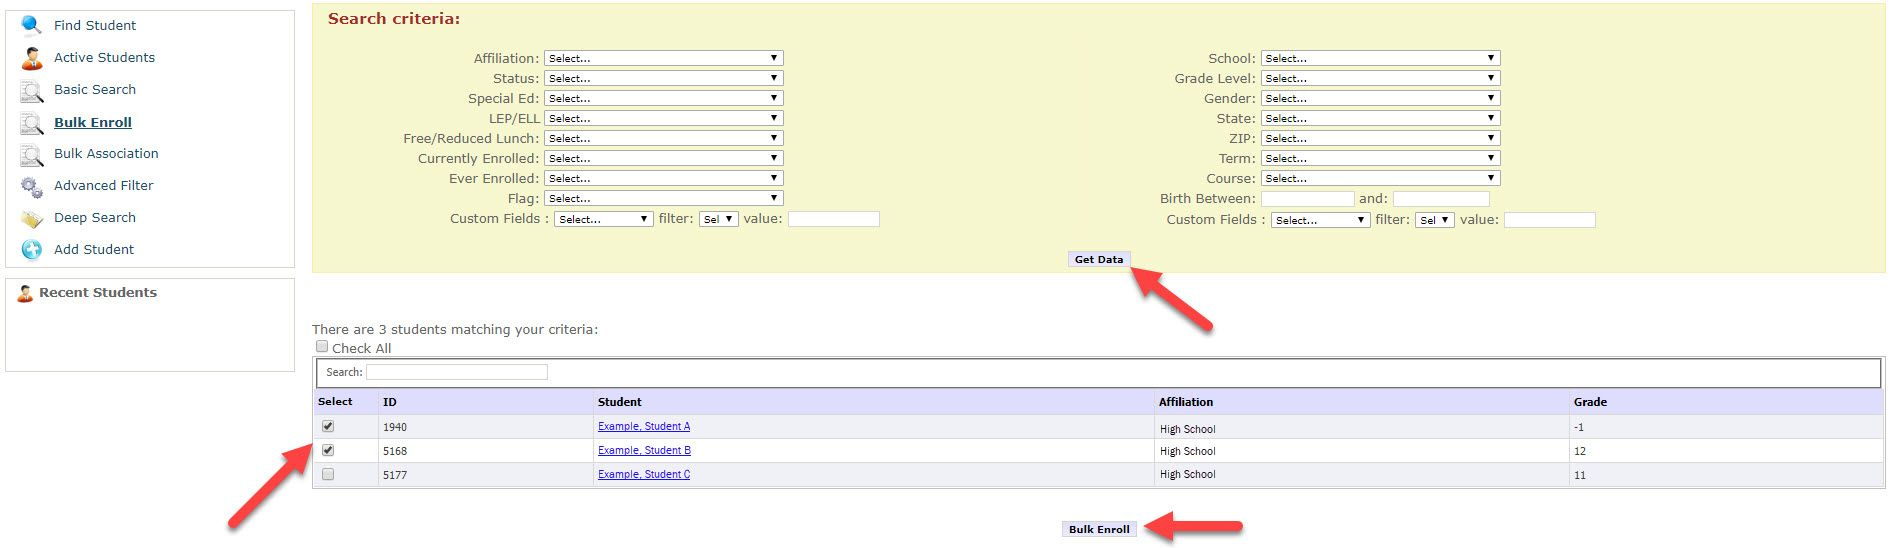 By default the Bulk Enroll page displays a search criteria section showing several drop-down fields to filter returned results when tapping the Get Data button. Once selected, a table appears showing available students to select. Arrows point to the Get Data button, the boxes that can be checked within the Select column and finally to the Bulk Enroll button below the table.